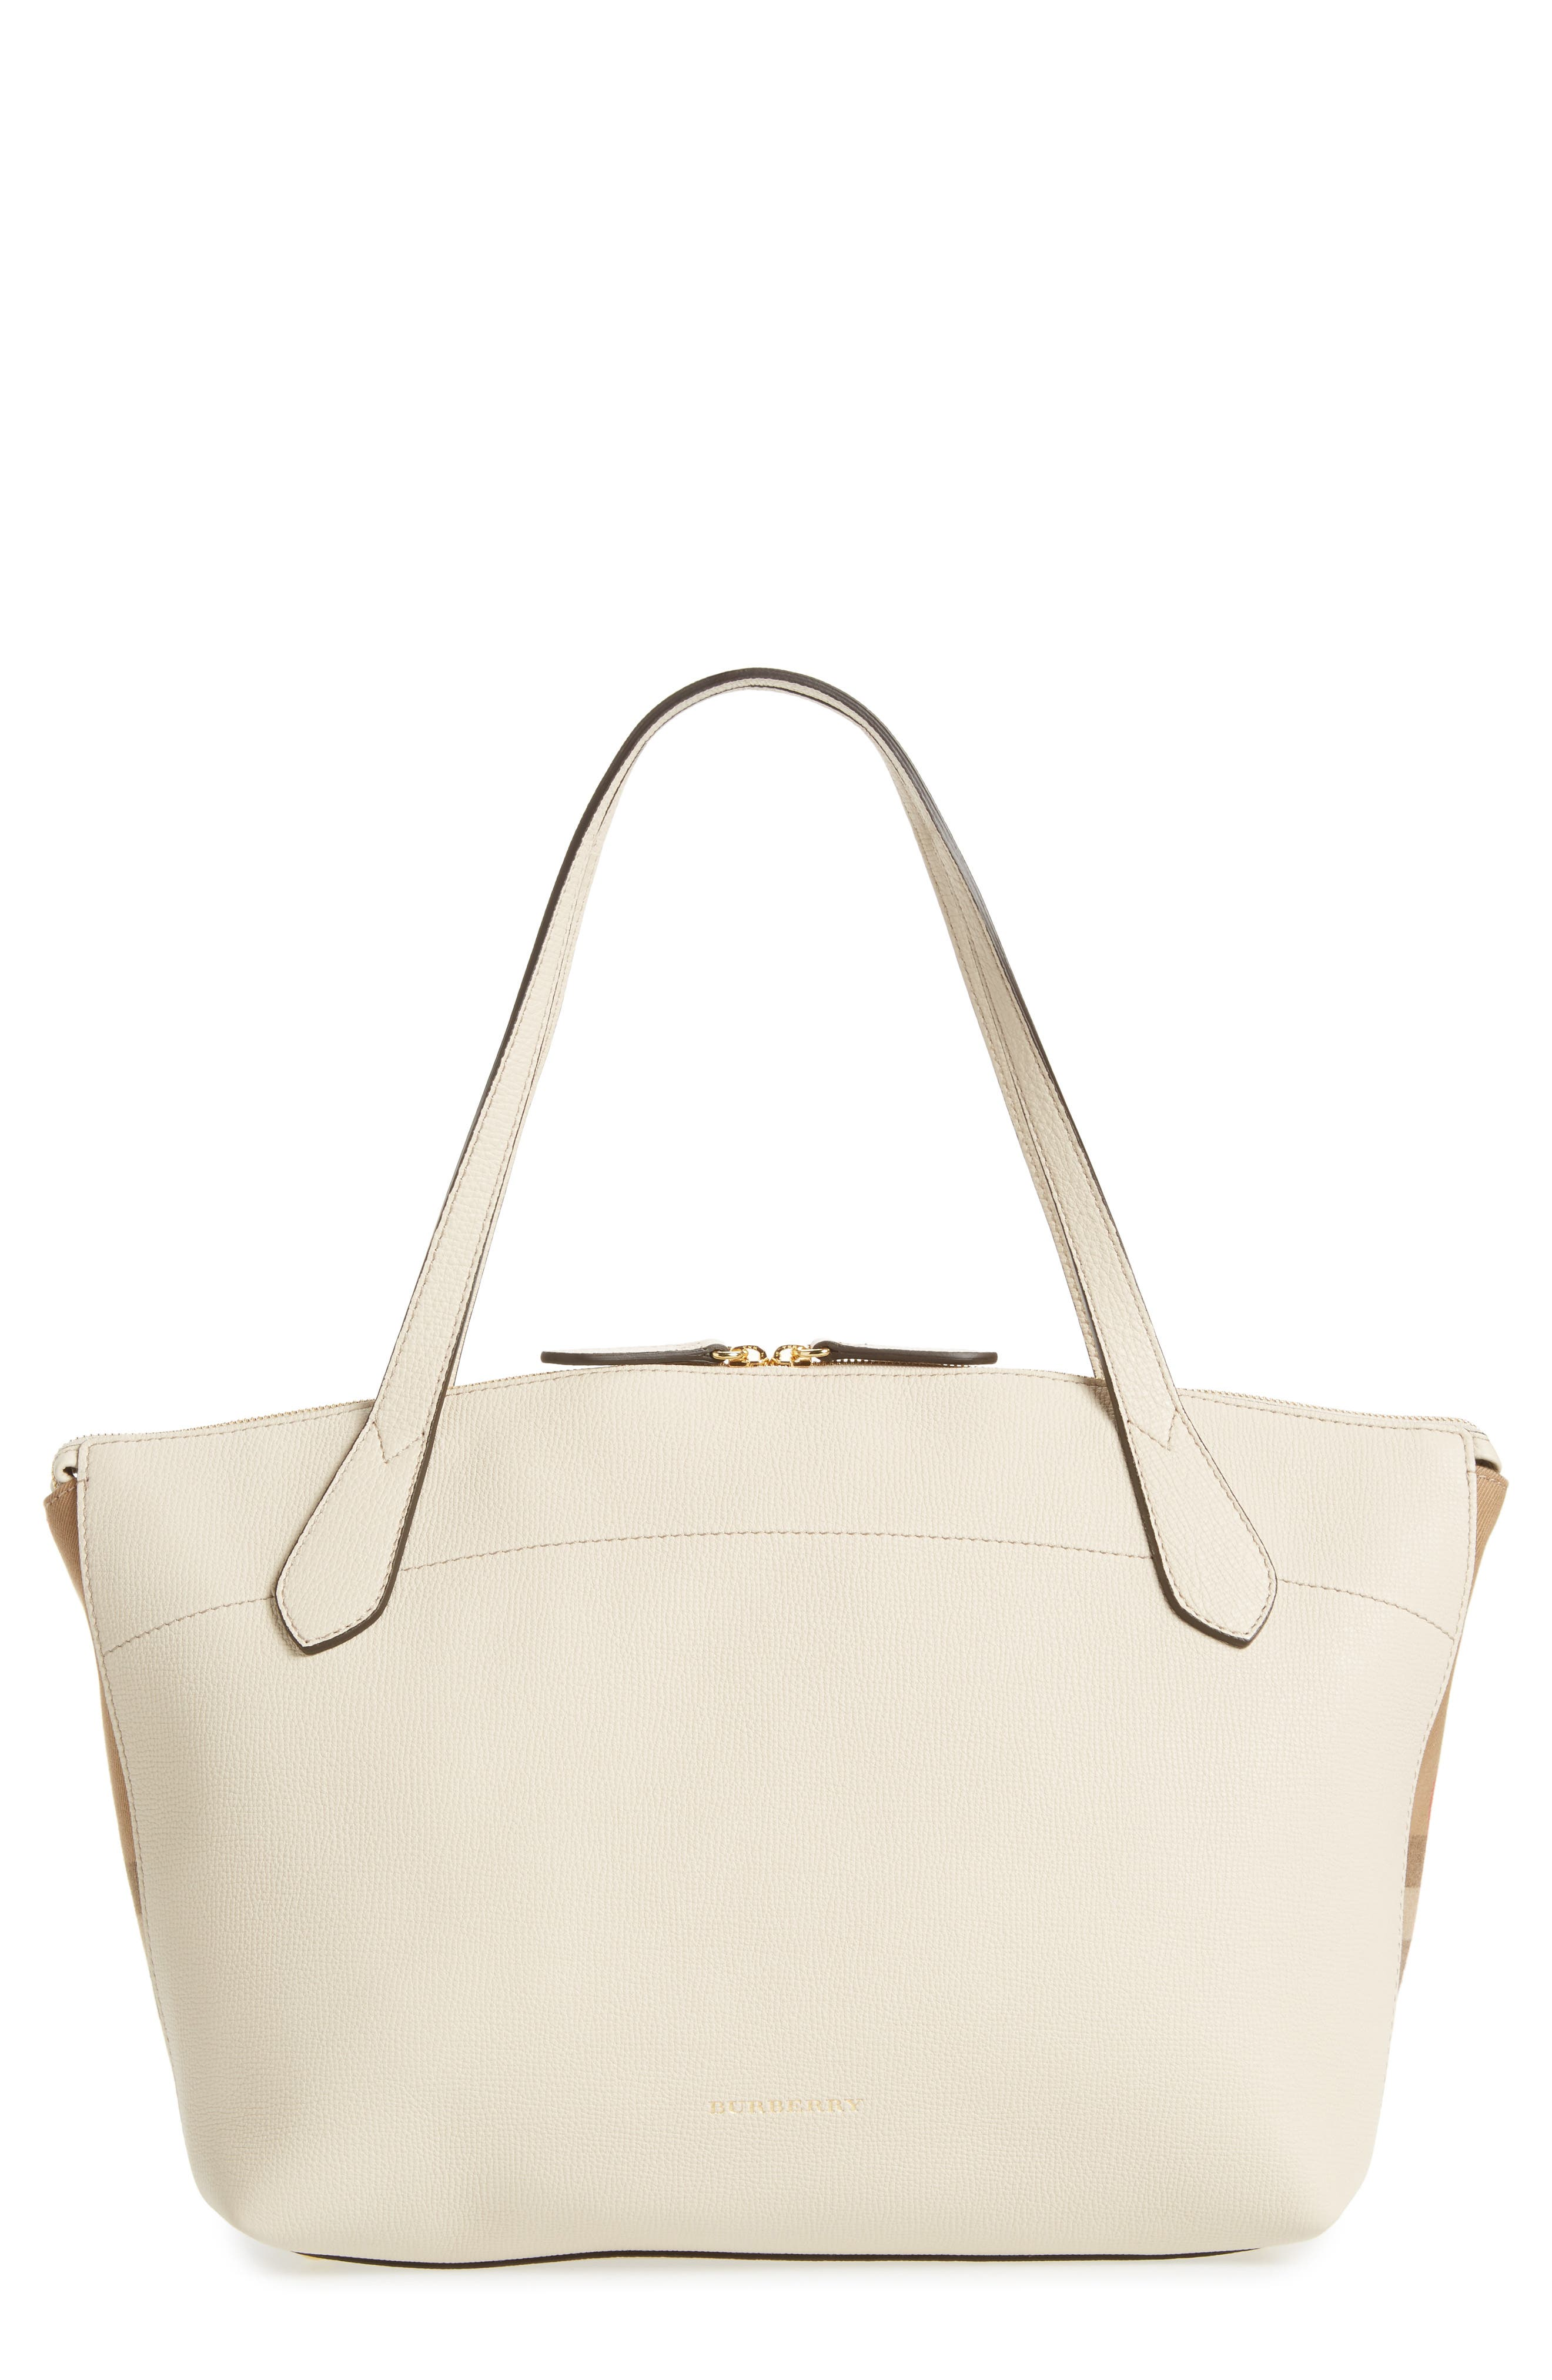 Welburn House Check & Leather Tote,                             Main thumbnail 1, color,                             900